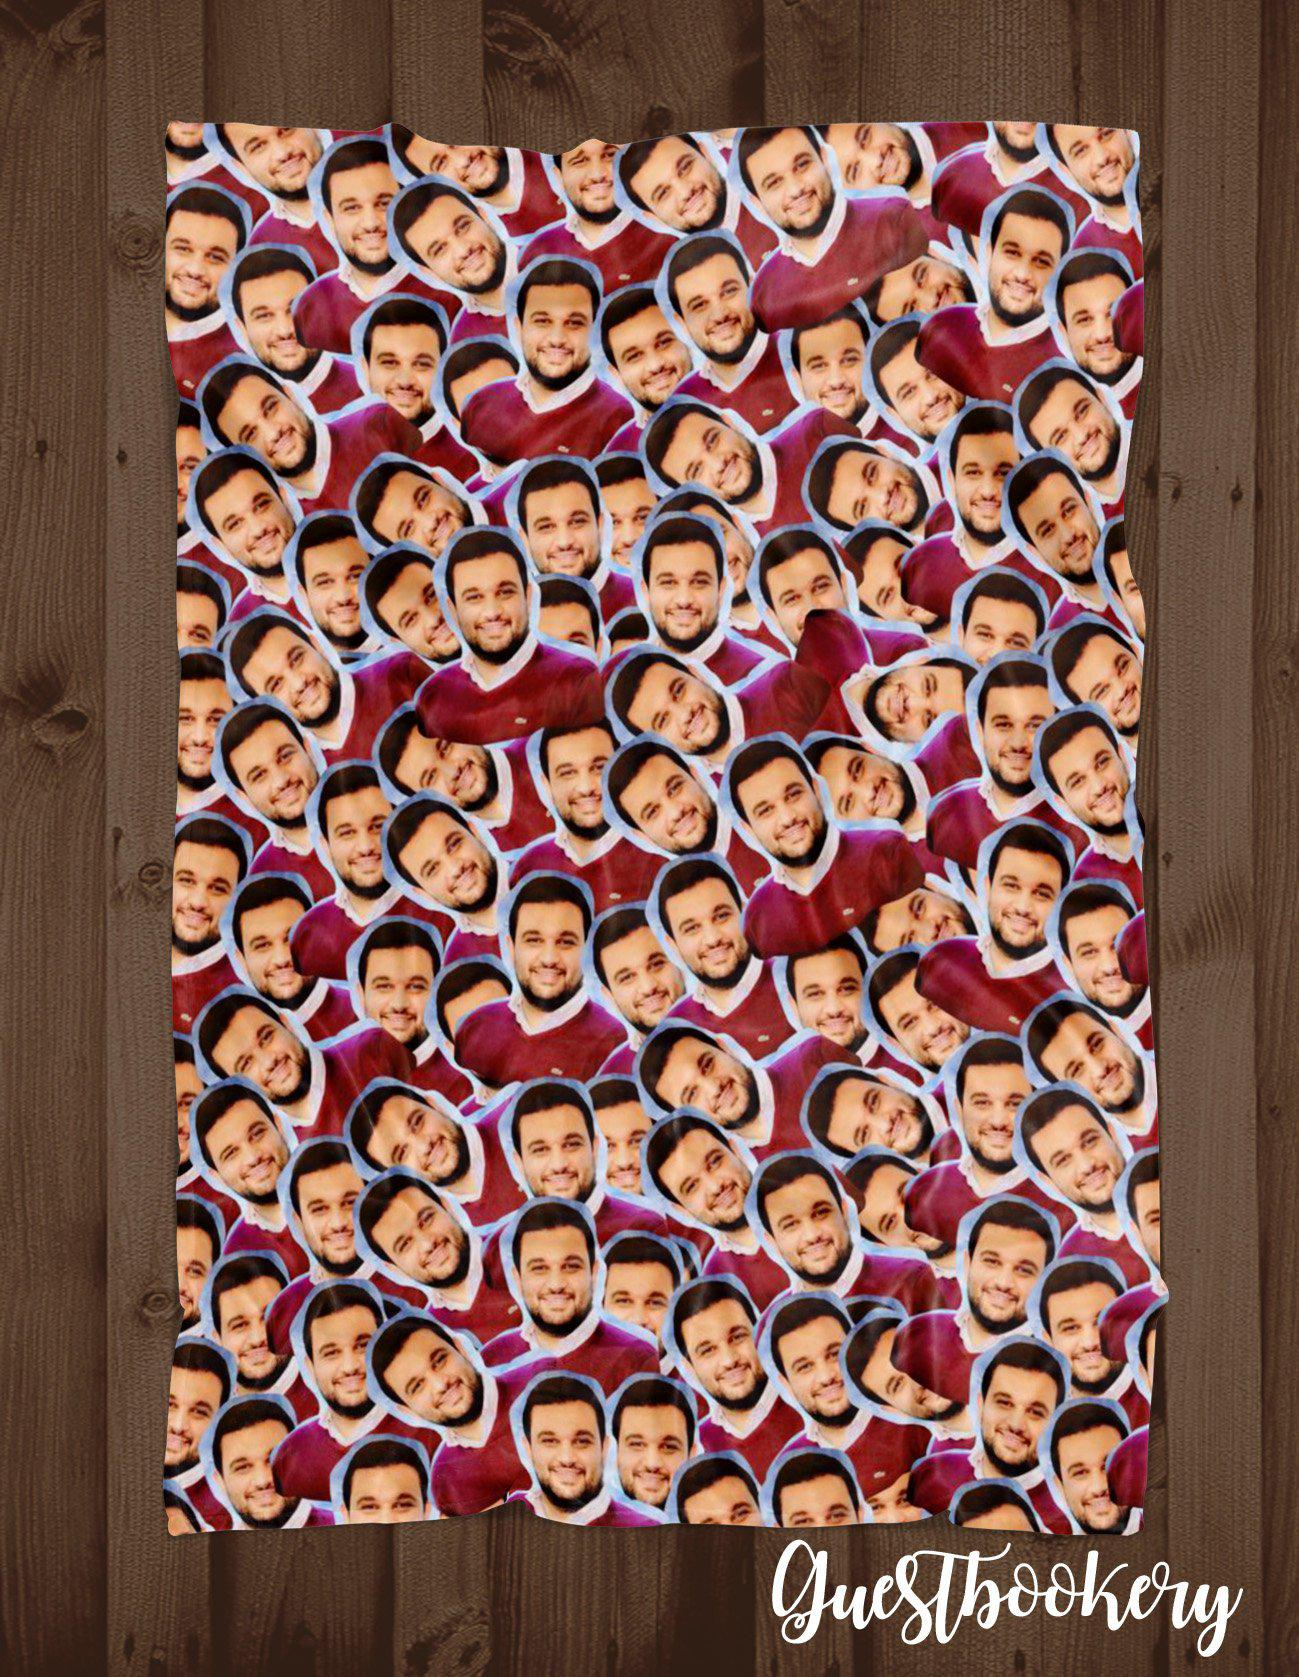 Custom Faces Blanket - Guestbookery